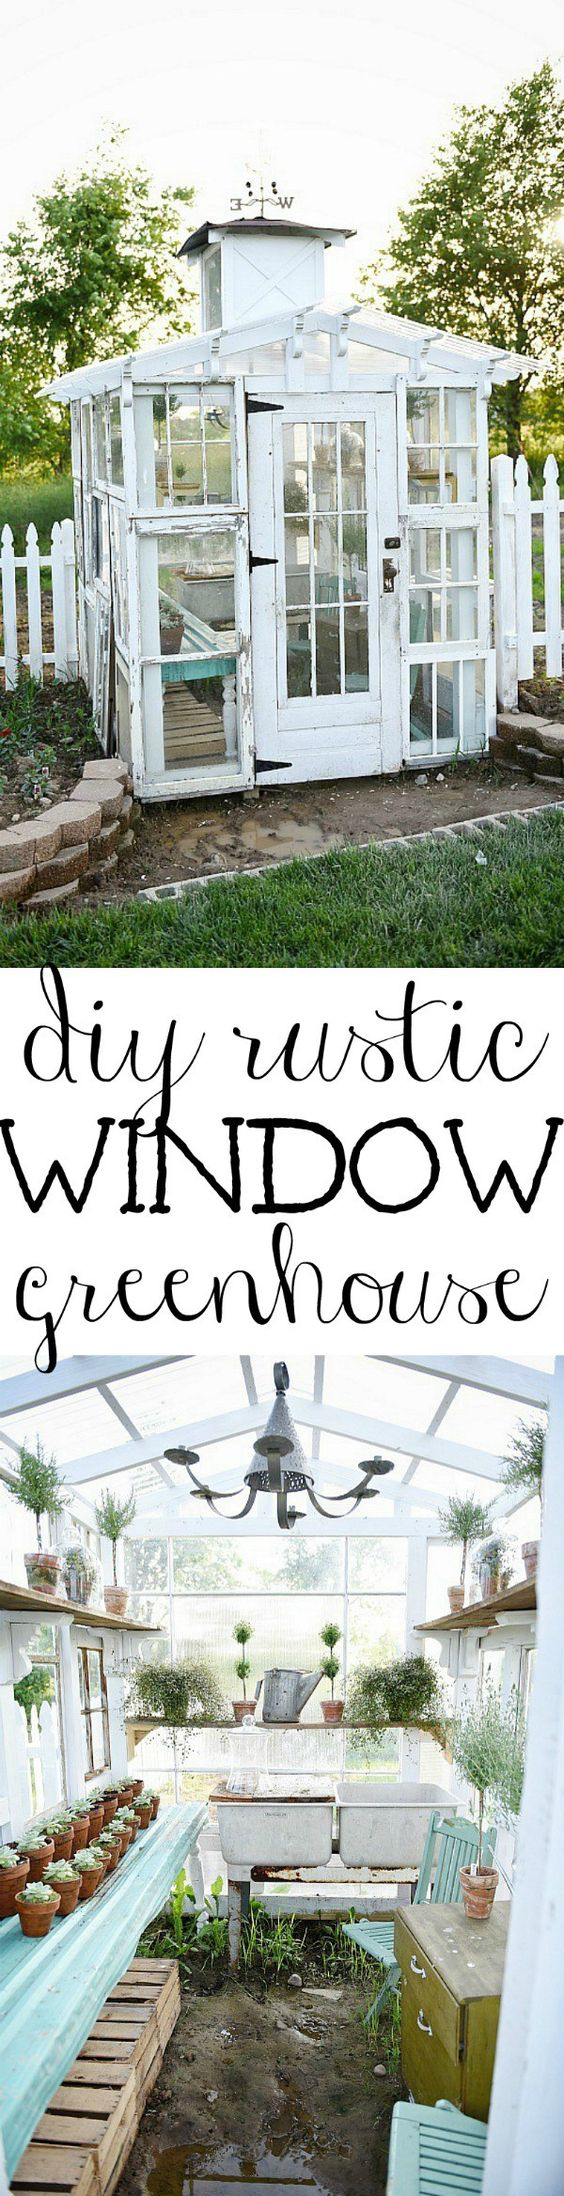 1. DIY Rustic Window Greenhouse